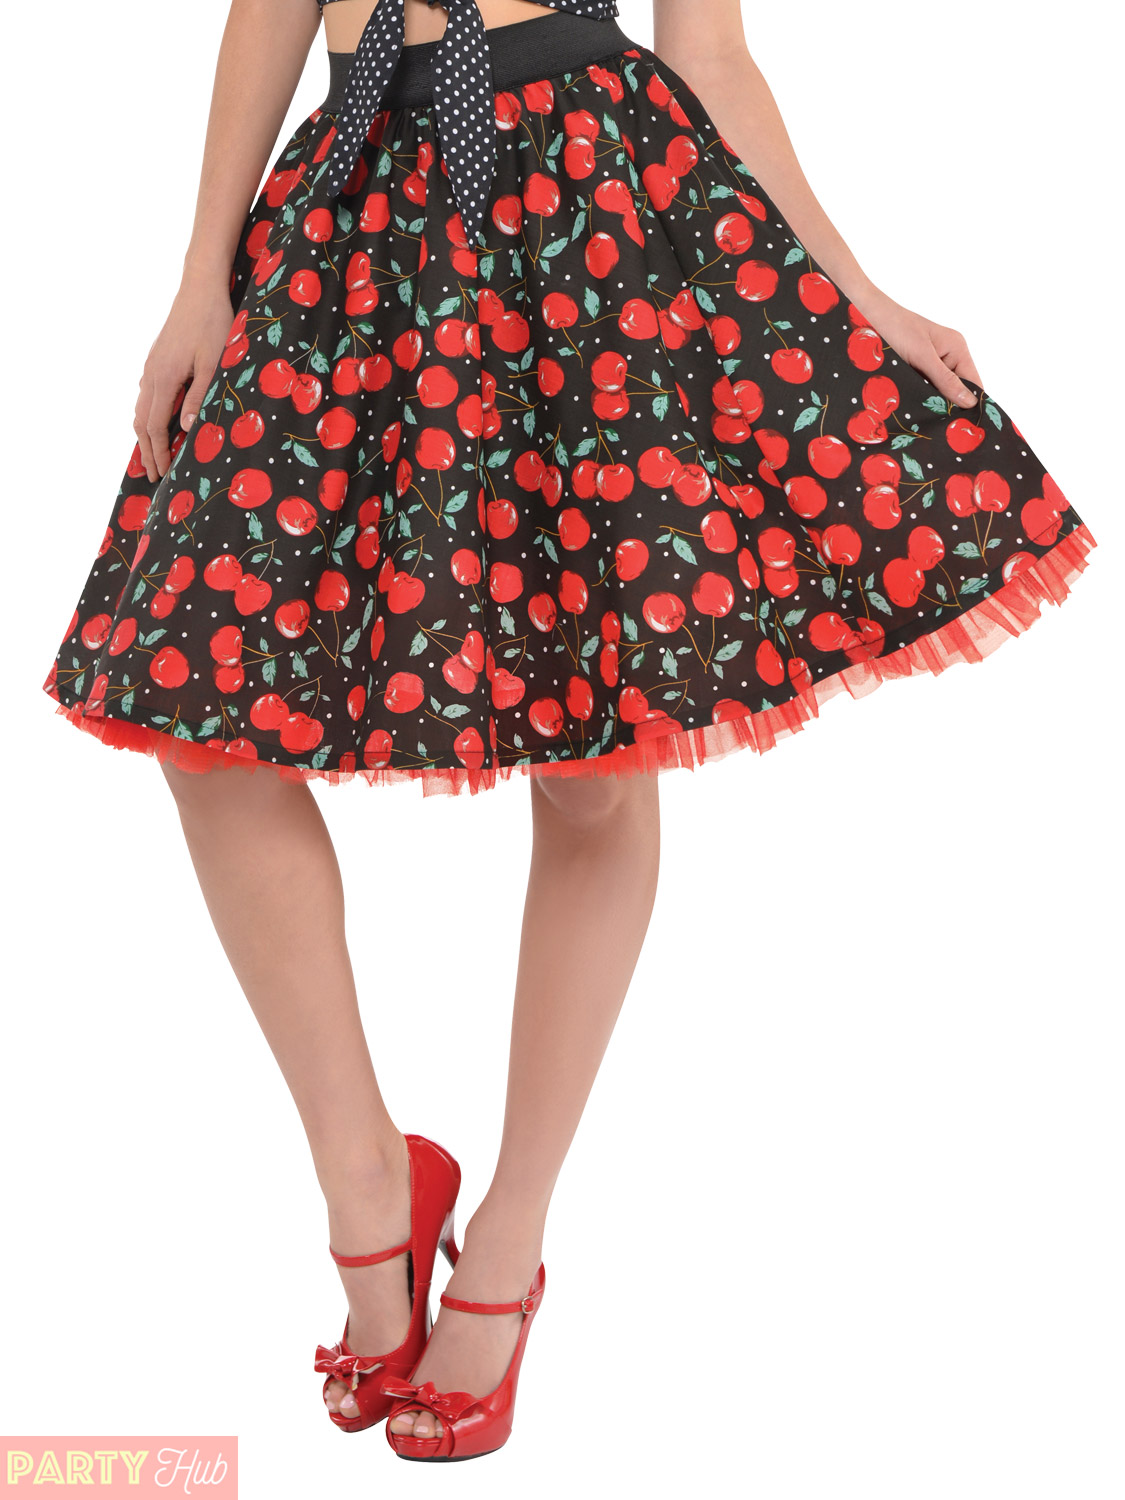 ladies rockabilly costume accessories womens 50s rock n roll fancy dress outfit ebay. Black Bedroom Furniture Sets. Home Design Ideas